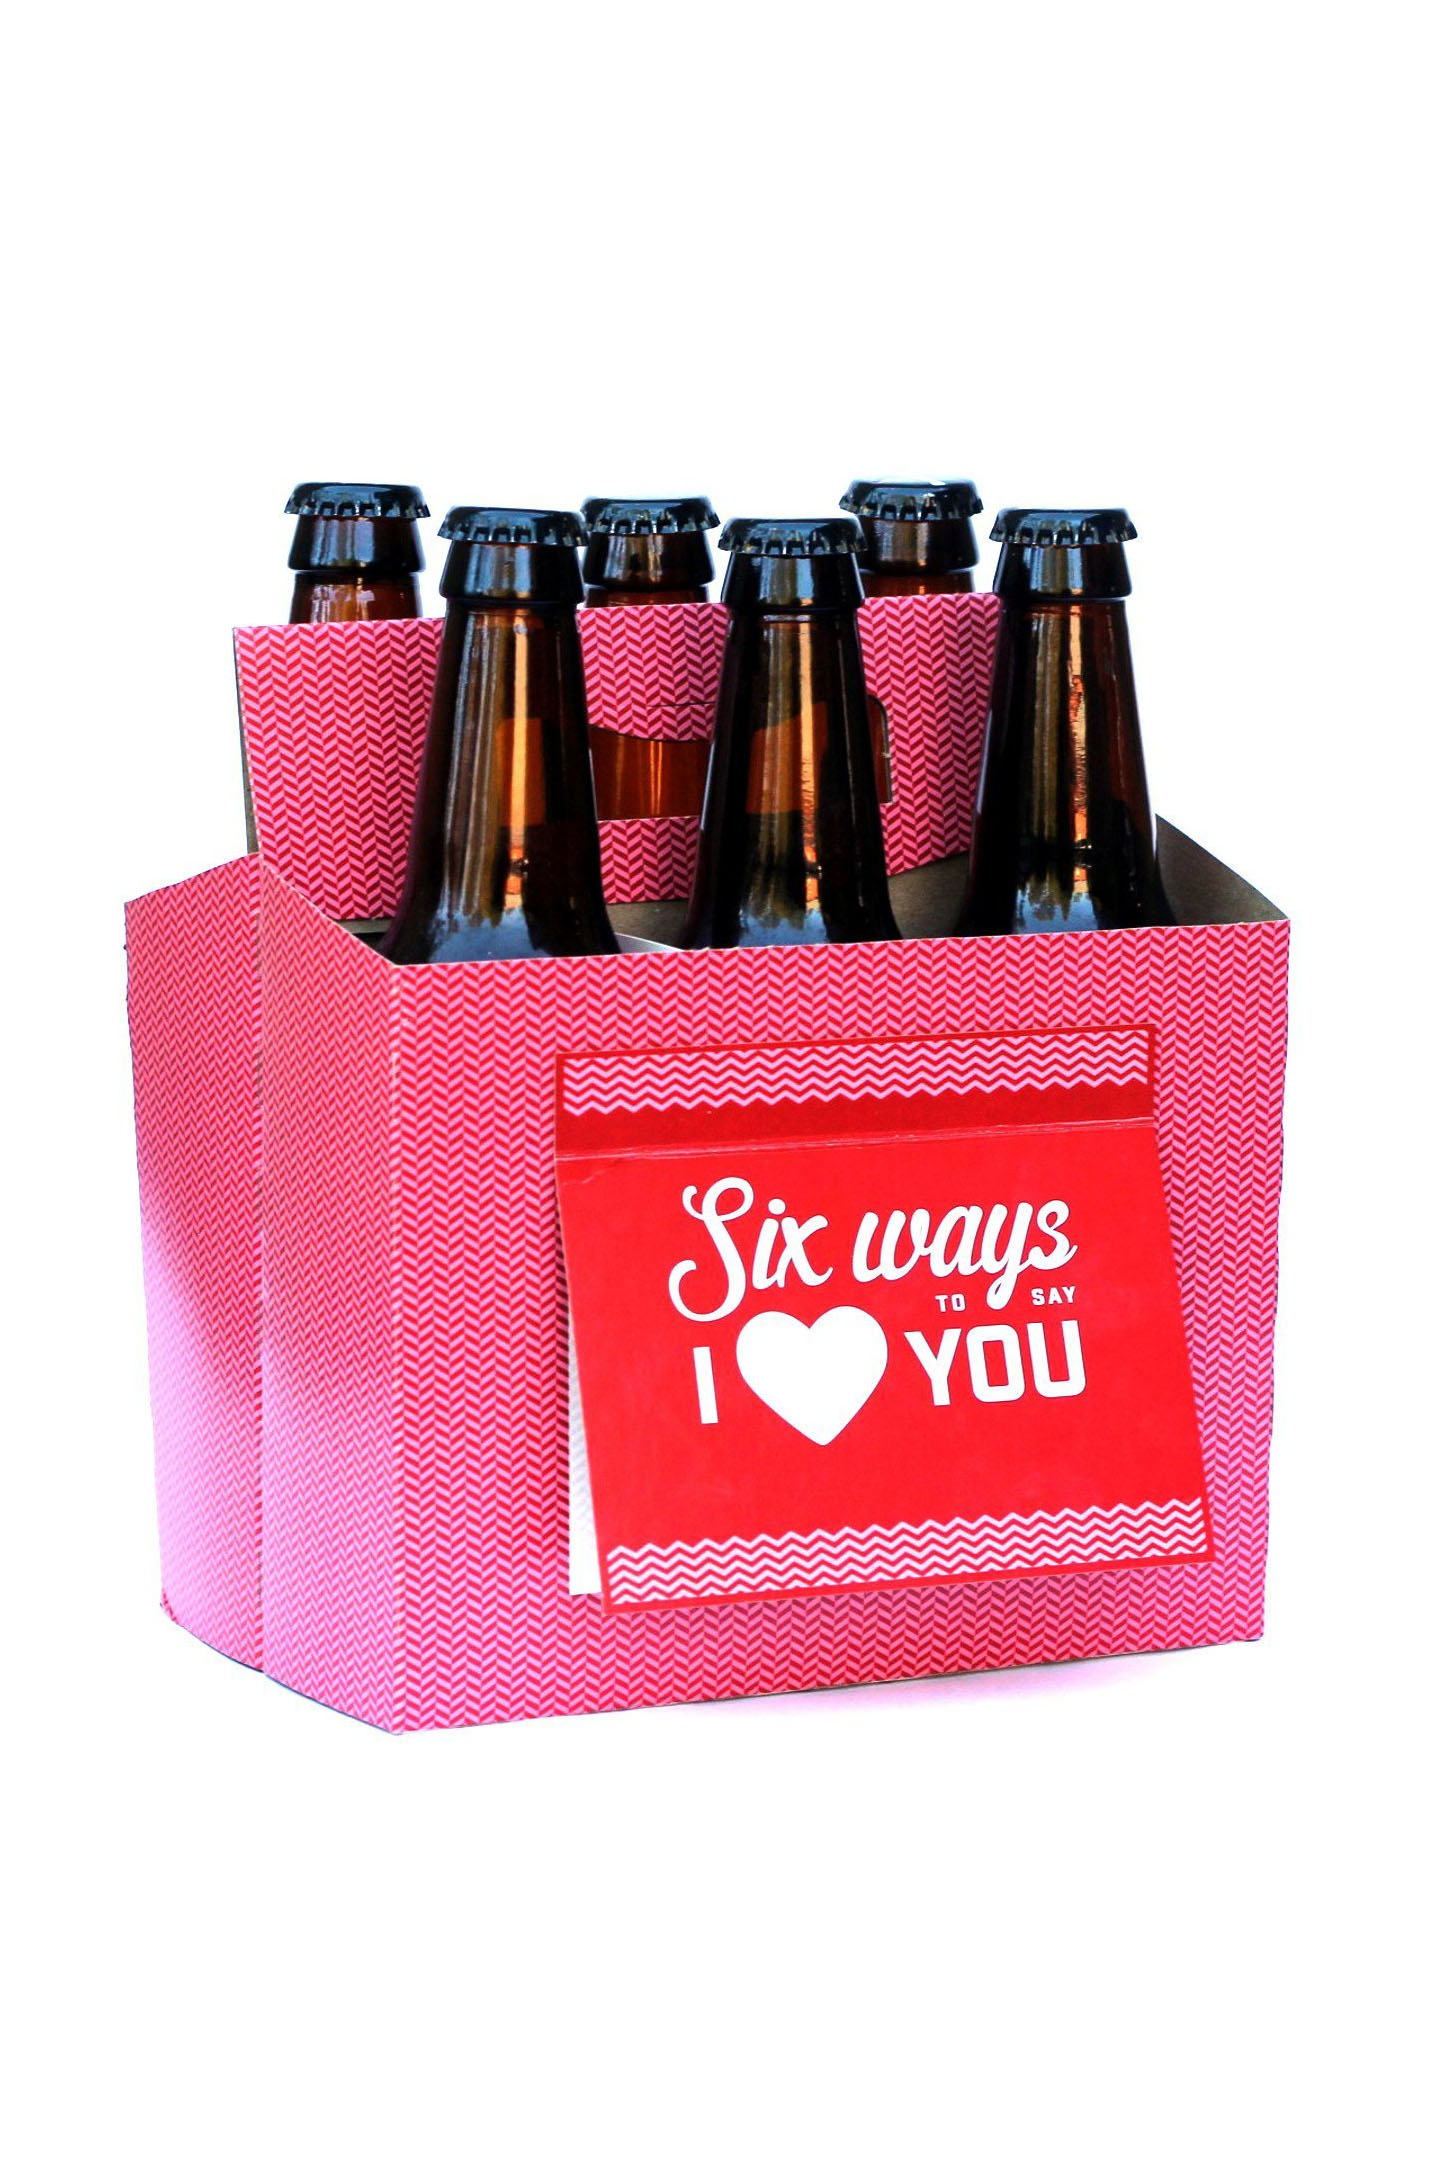 40 Best Valentine s Day Gifts for Him 2017 Good Ideas for